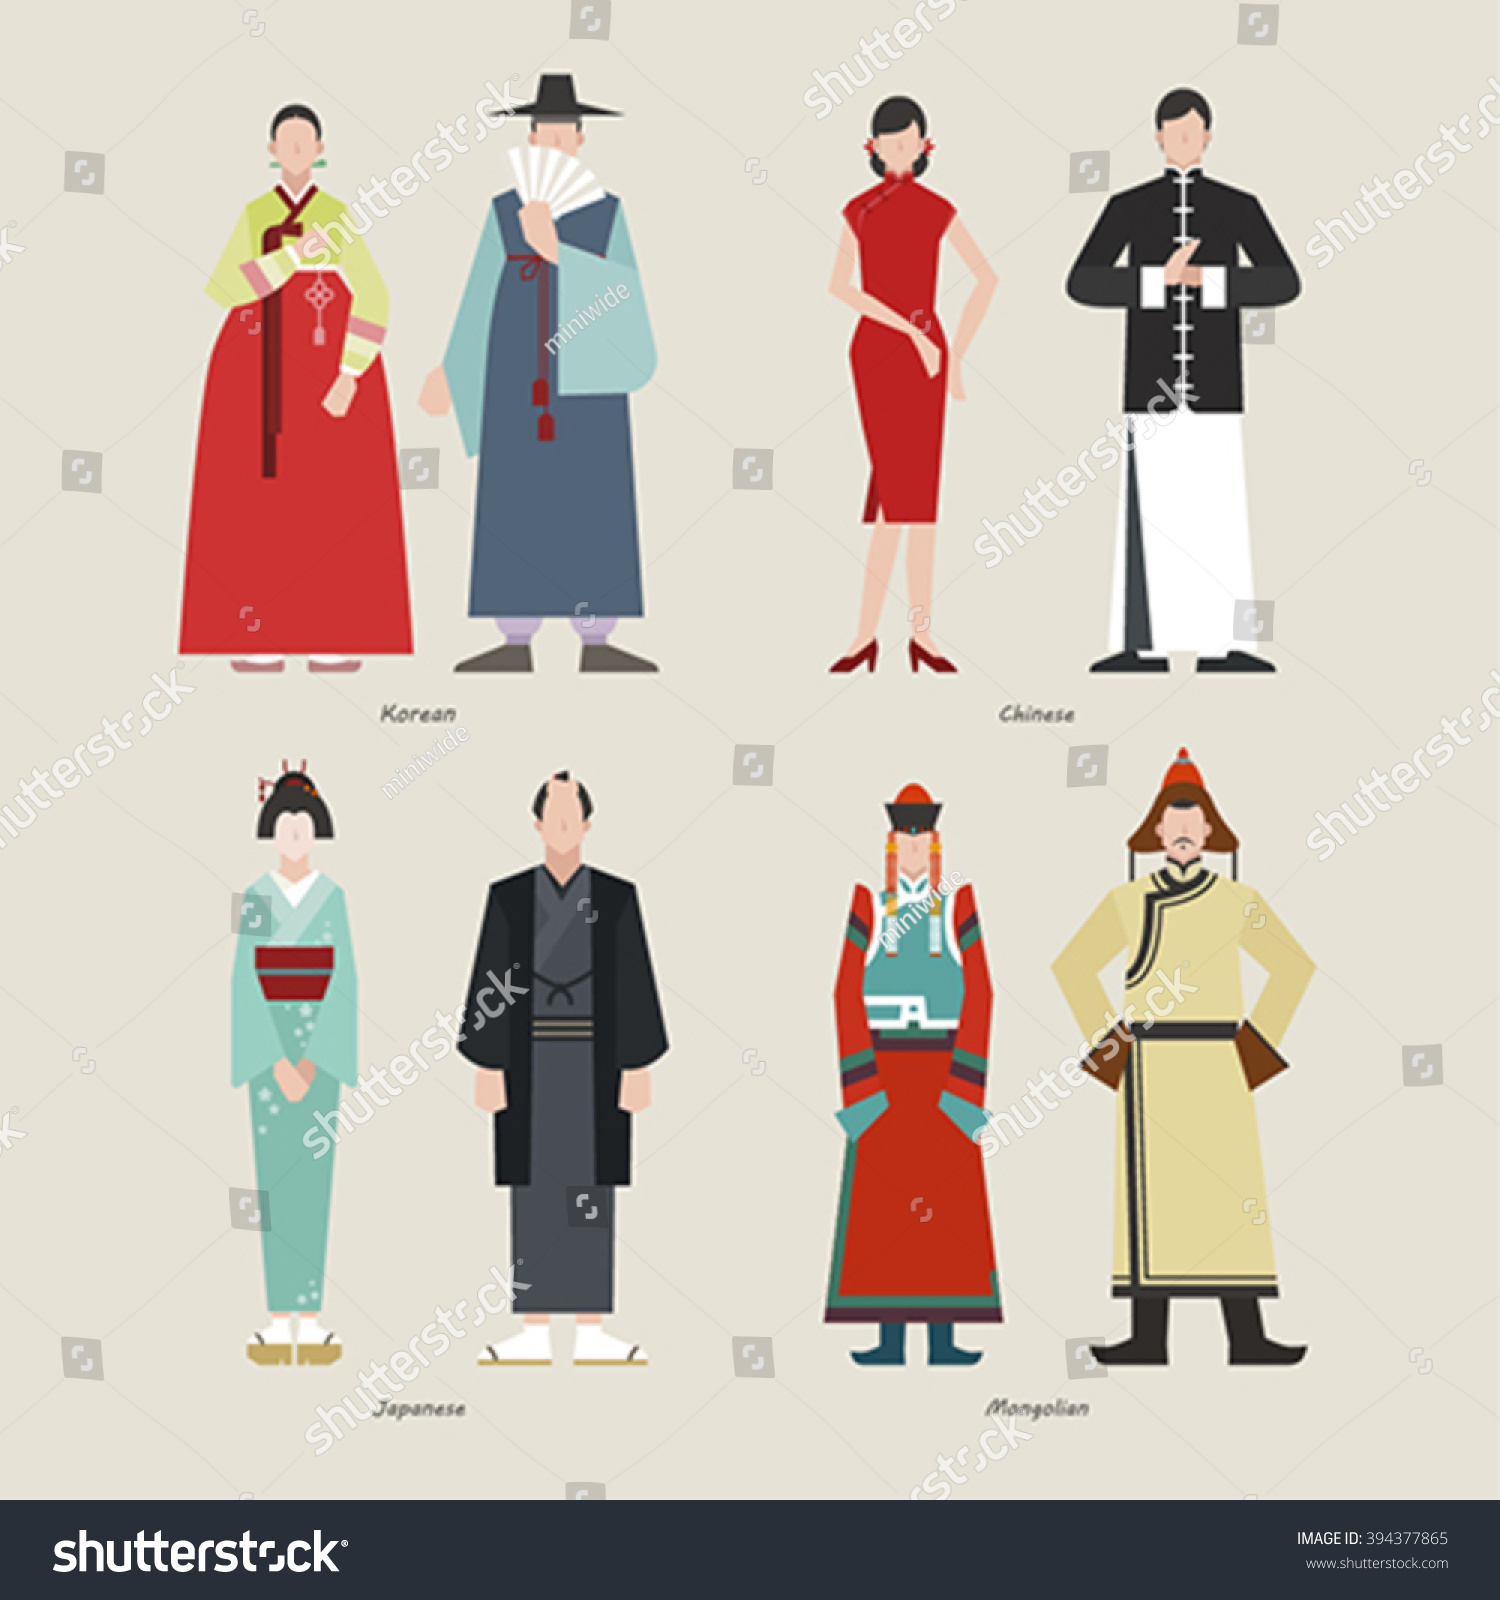 role of women in china japan and the mongol empire essay Mongol expansion the mongol empire began as small tribes of nomadic animal  herders on the vast  china 1281 a second attempted invasion of japan fails  1294 kublai khan dies the mongol empire begins  mongol society, women  held strong social roles  your point of view, write a short essay explaining  your.